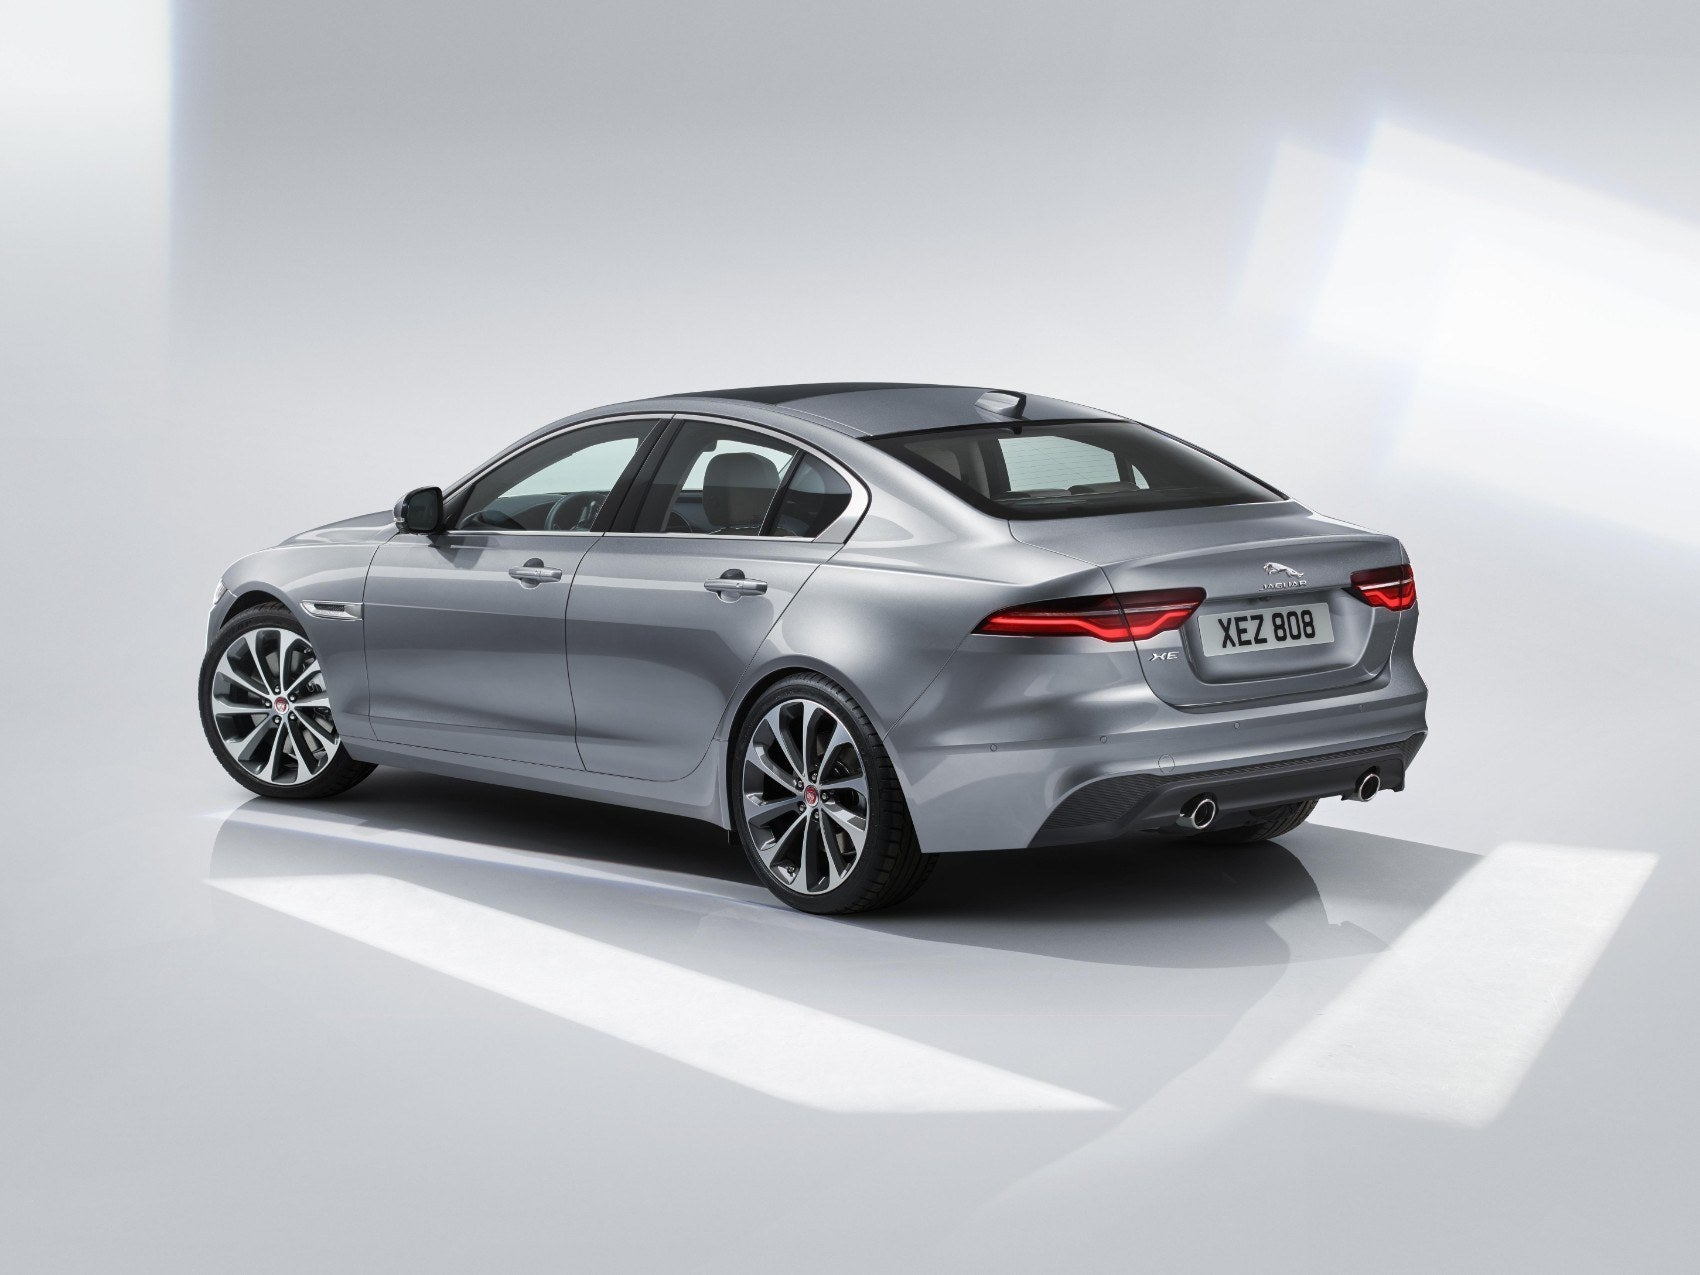 How Hybrid Cars Work >> 2020 Jaguar XE: Proper, Precise & Sporty In All Ways British